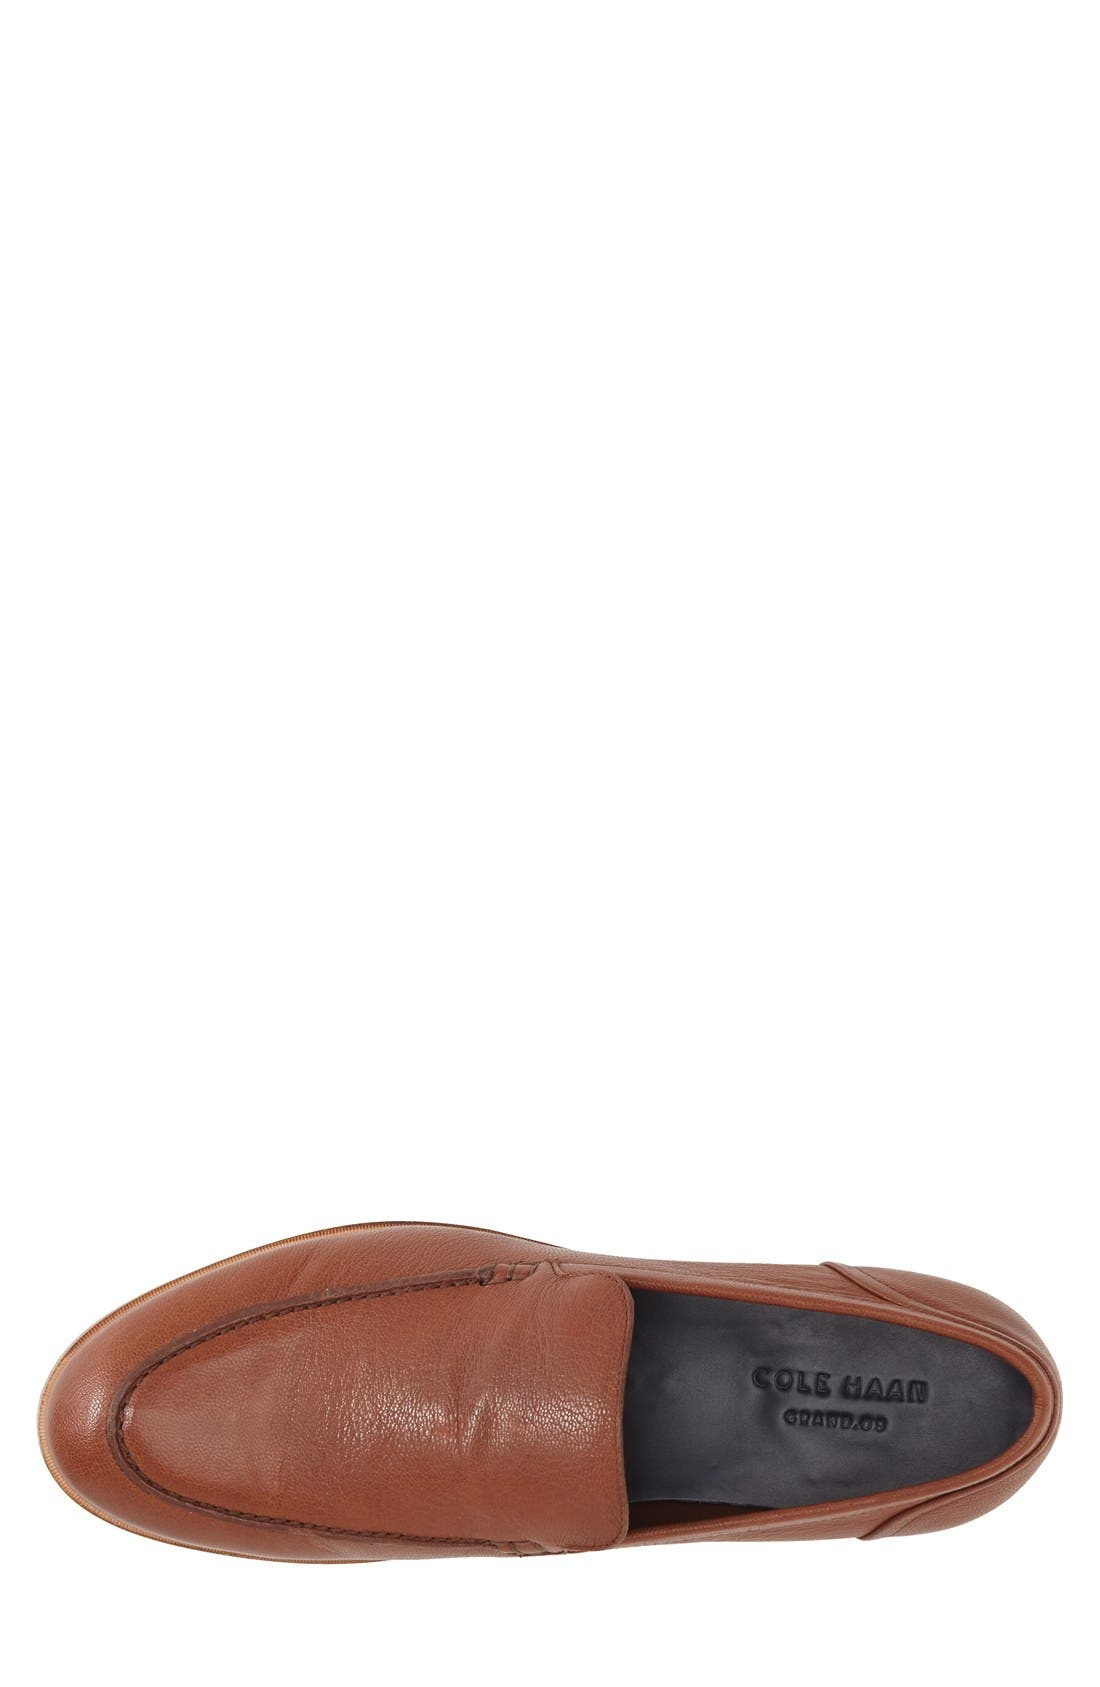 'Bedford' Loafer,                             Alternate thumbnail 3, color,                             Sequoia Brown